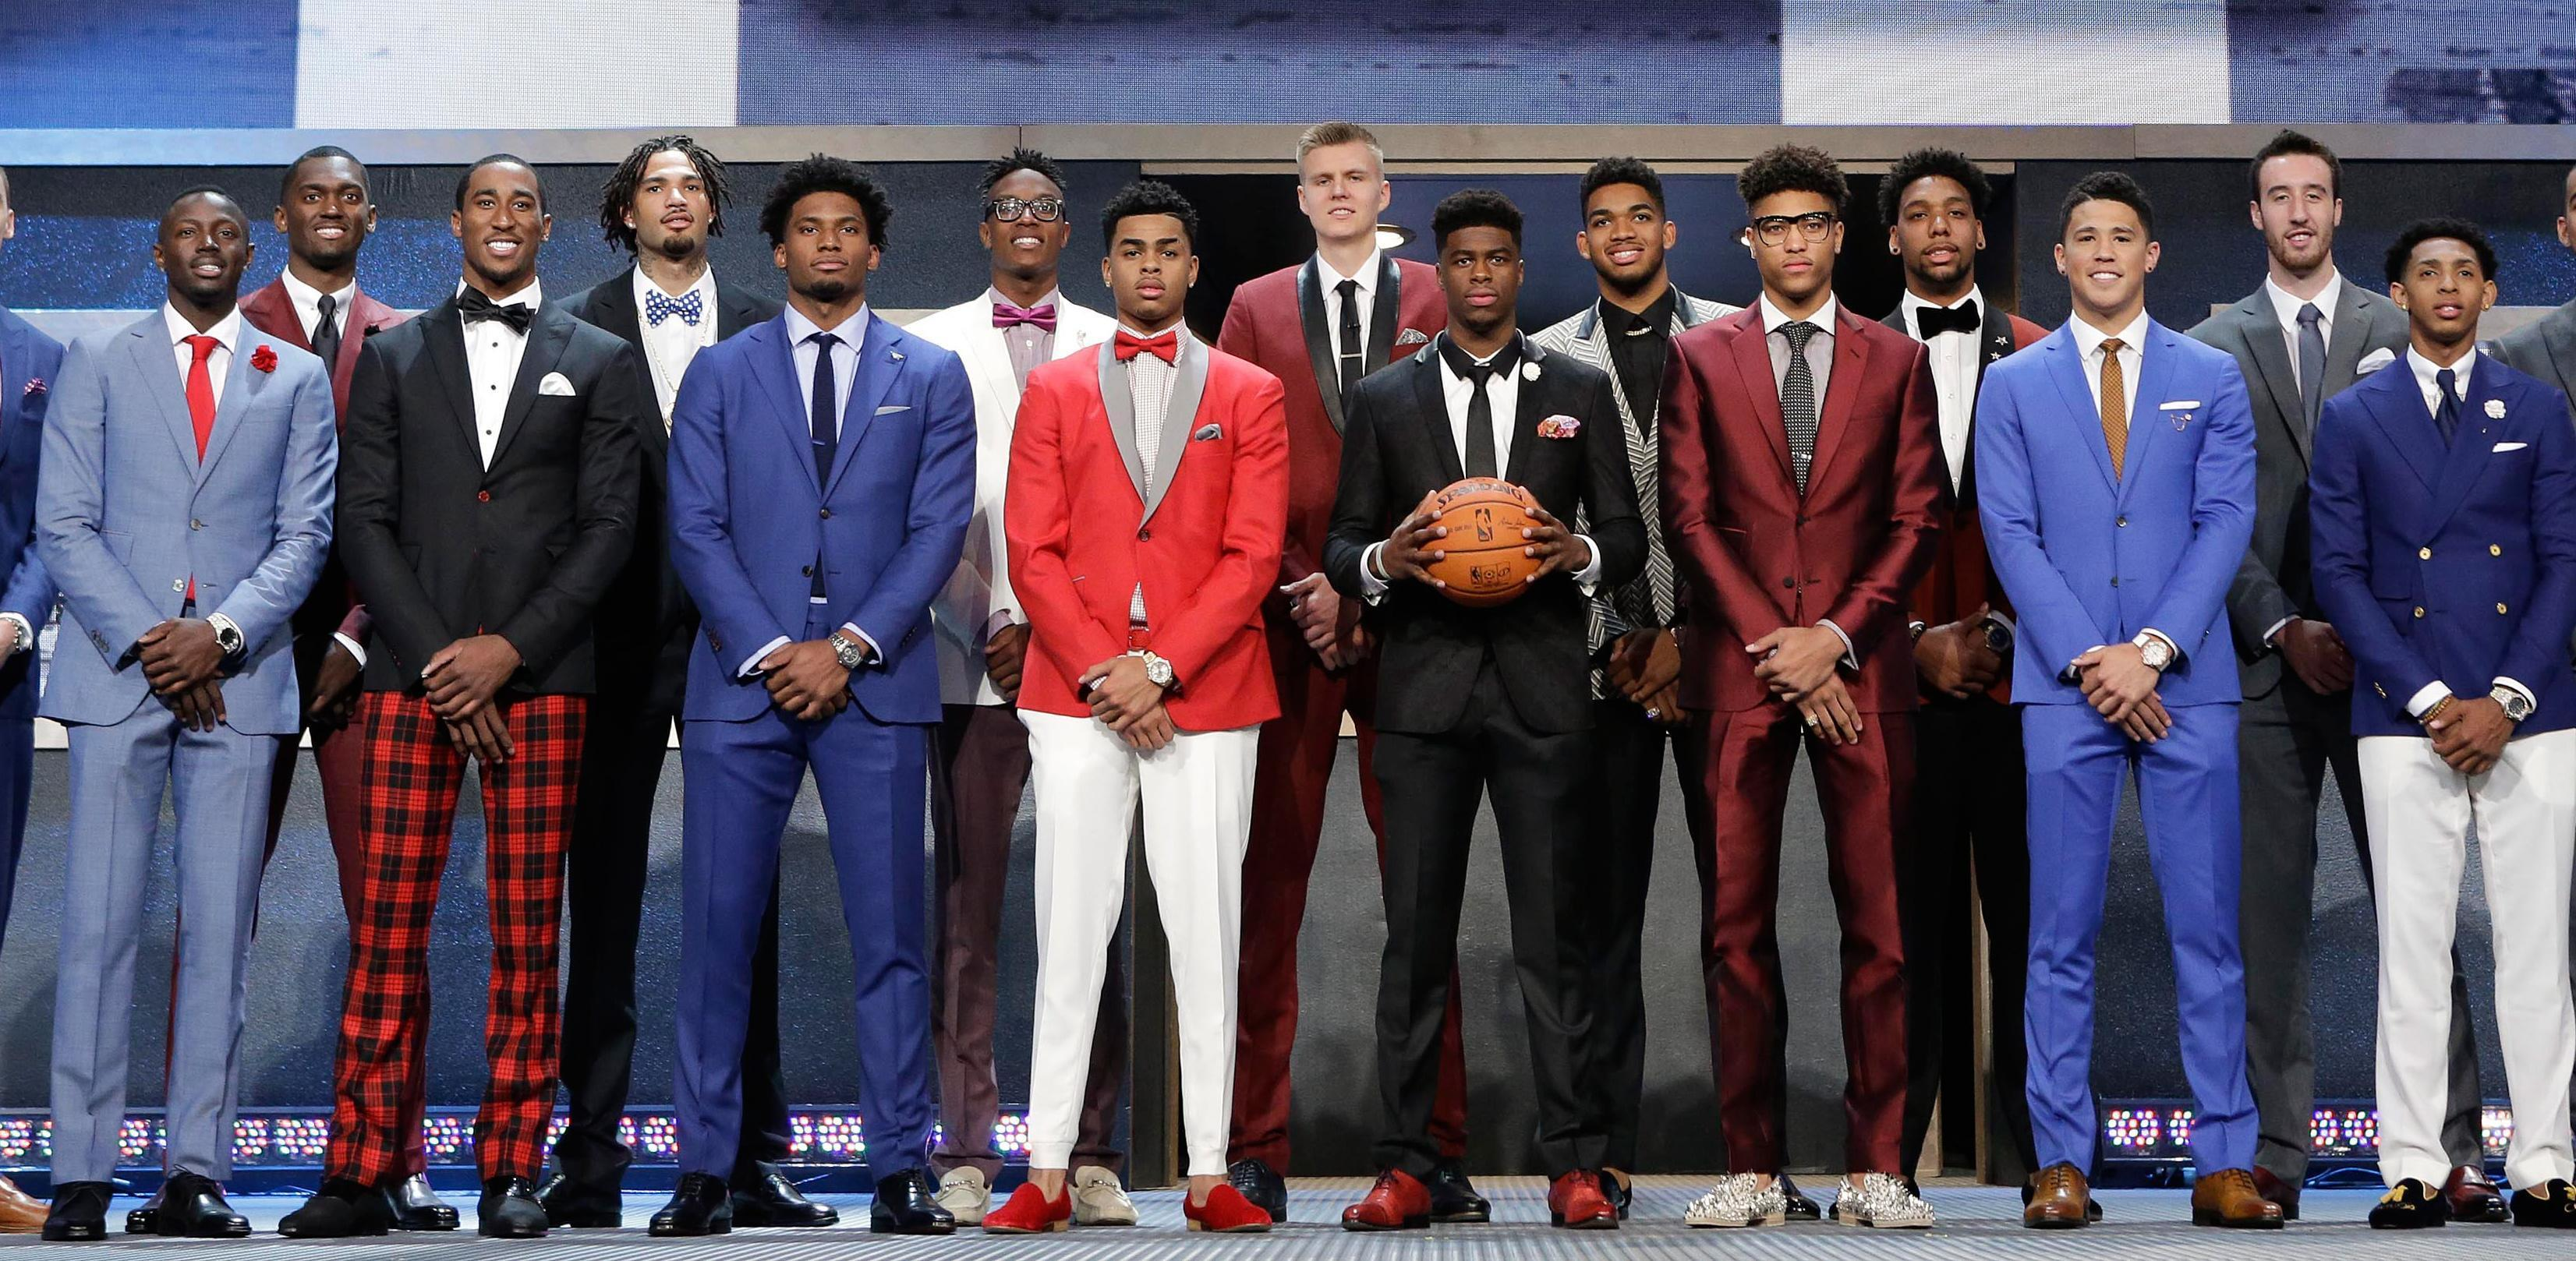 New York Times Fashion Critic Says Nba Draft Players Look Like Refugees From A Broadway Show